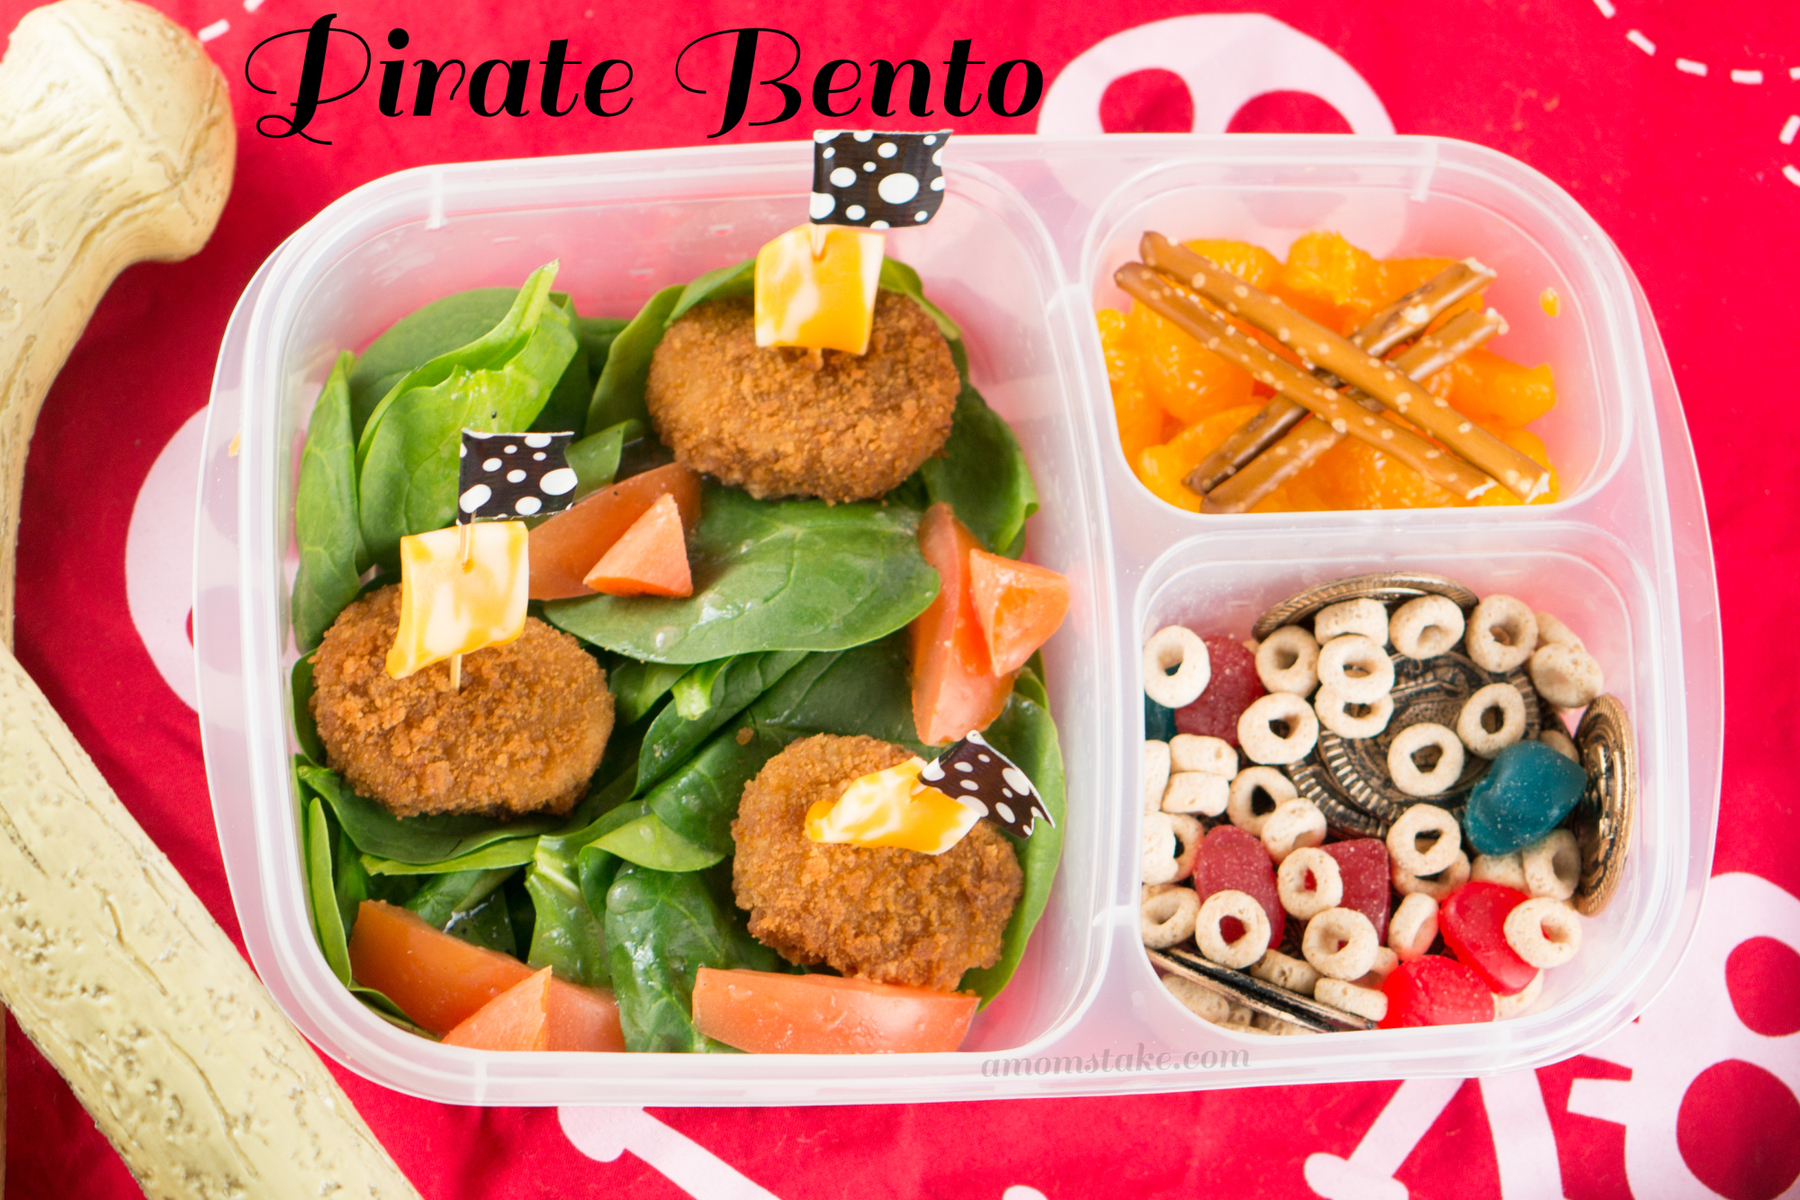 Pirate Bento Lunchbox Ideas